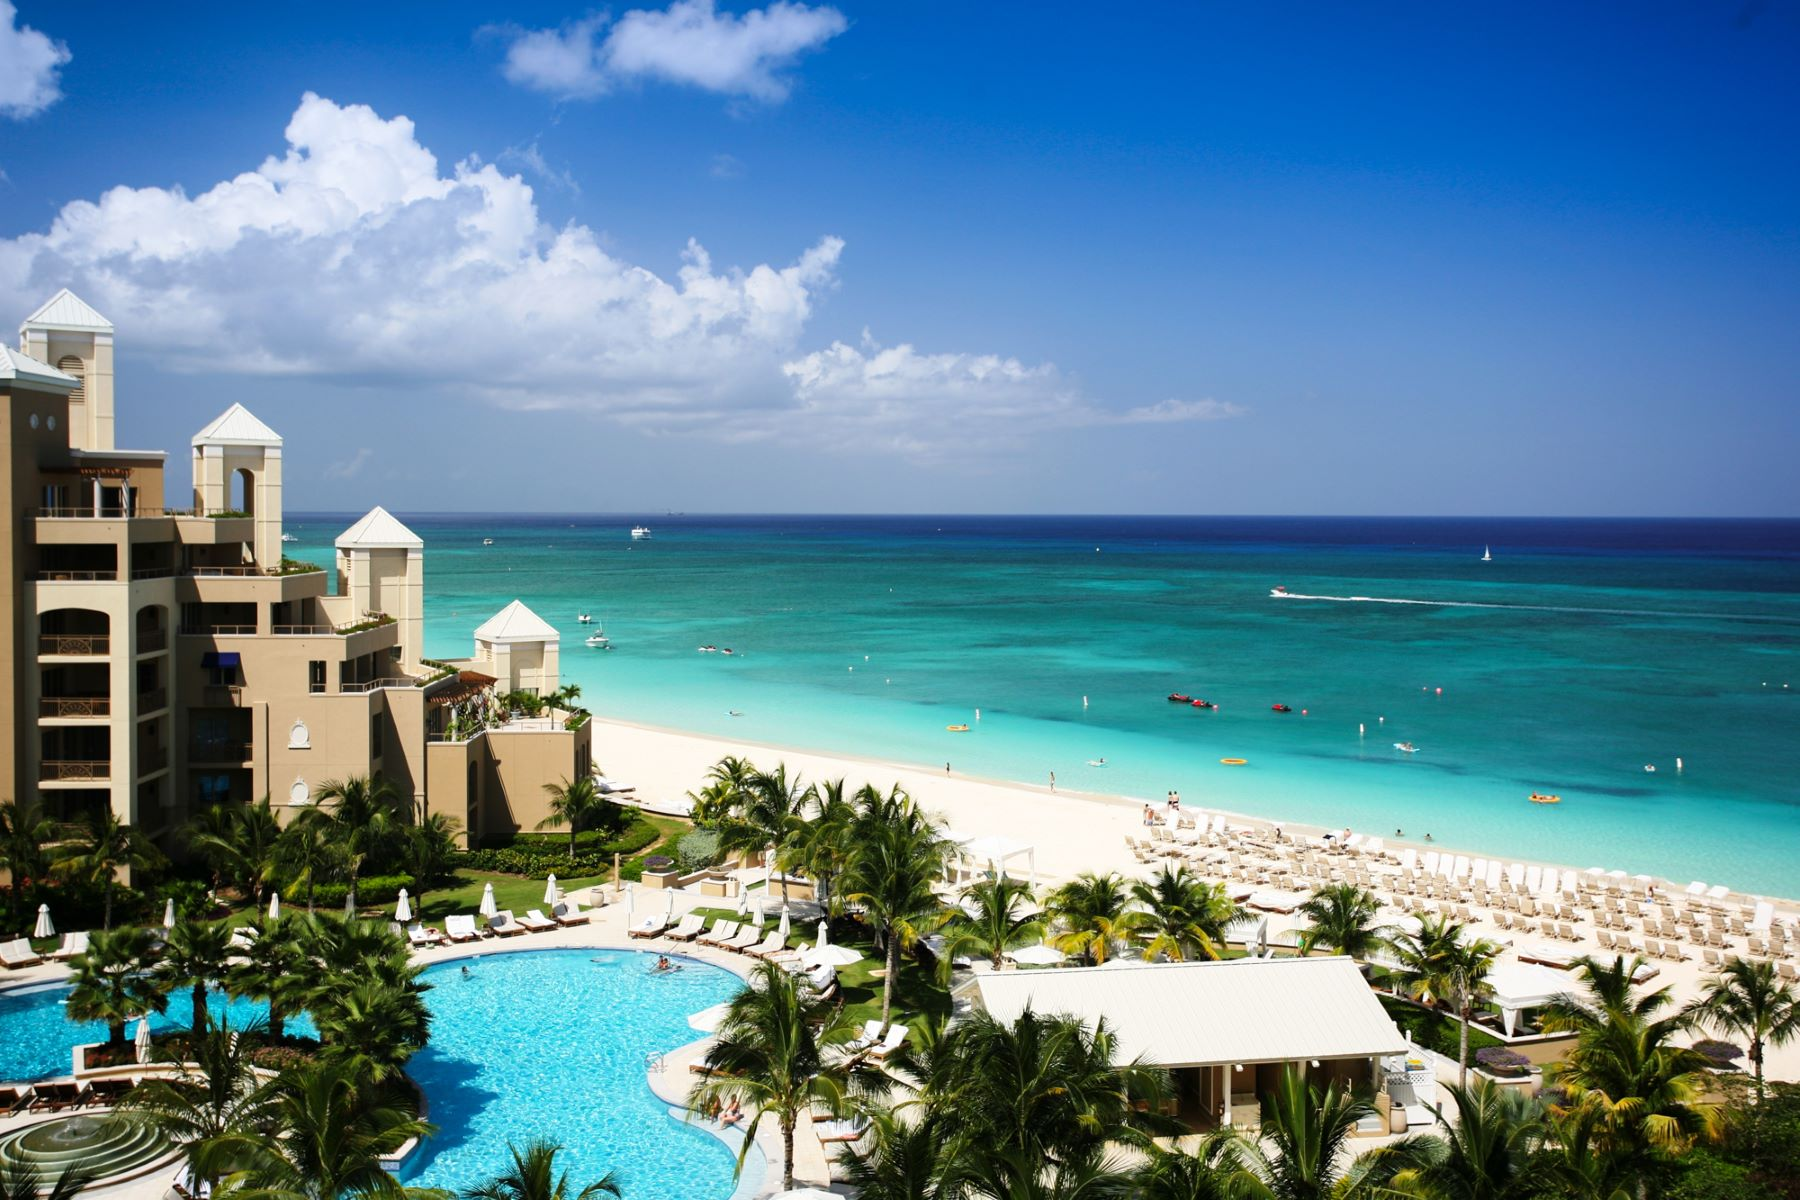 Condominium for Rent at Ritz-Carlton vacation rental The Ritz-Carlton, Grand Cayman 1059 West Bay Rd Seven Mile Beach, KY1 Cayman Islands